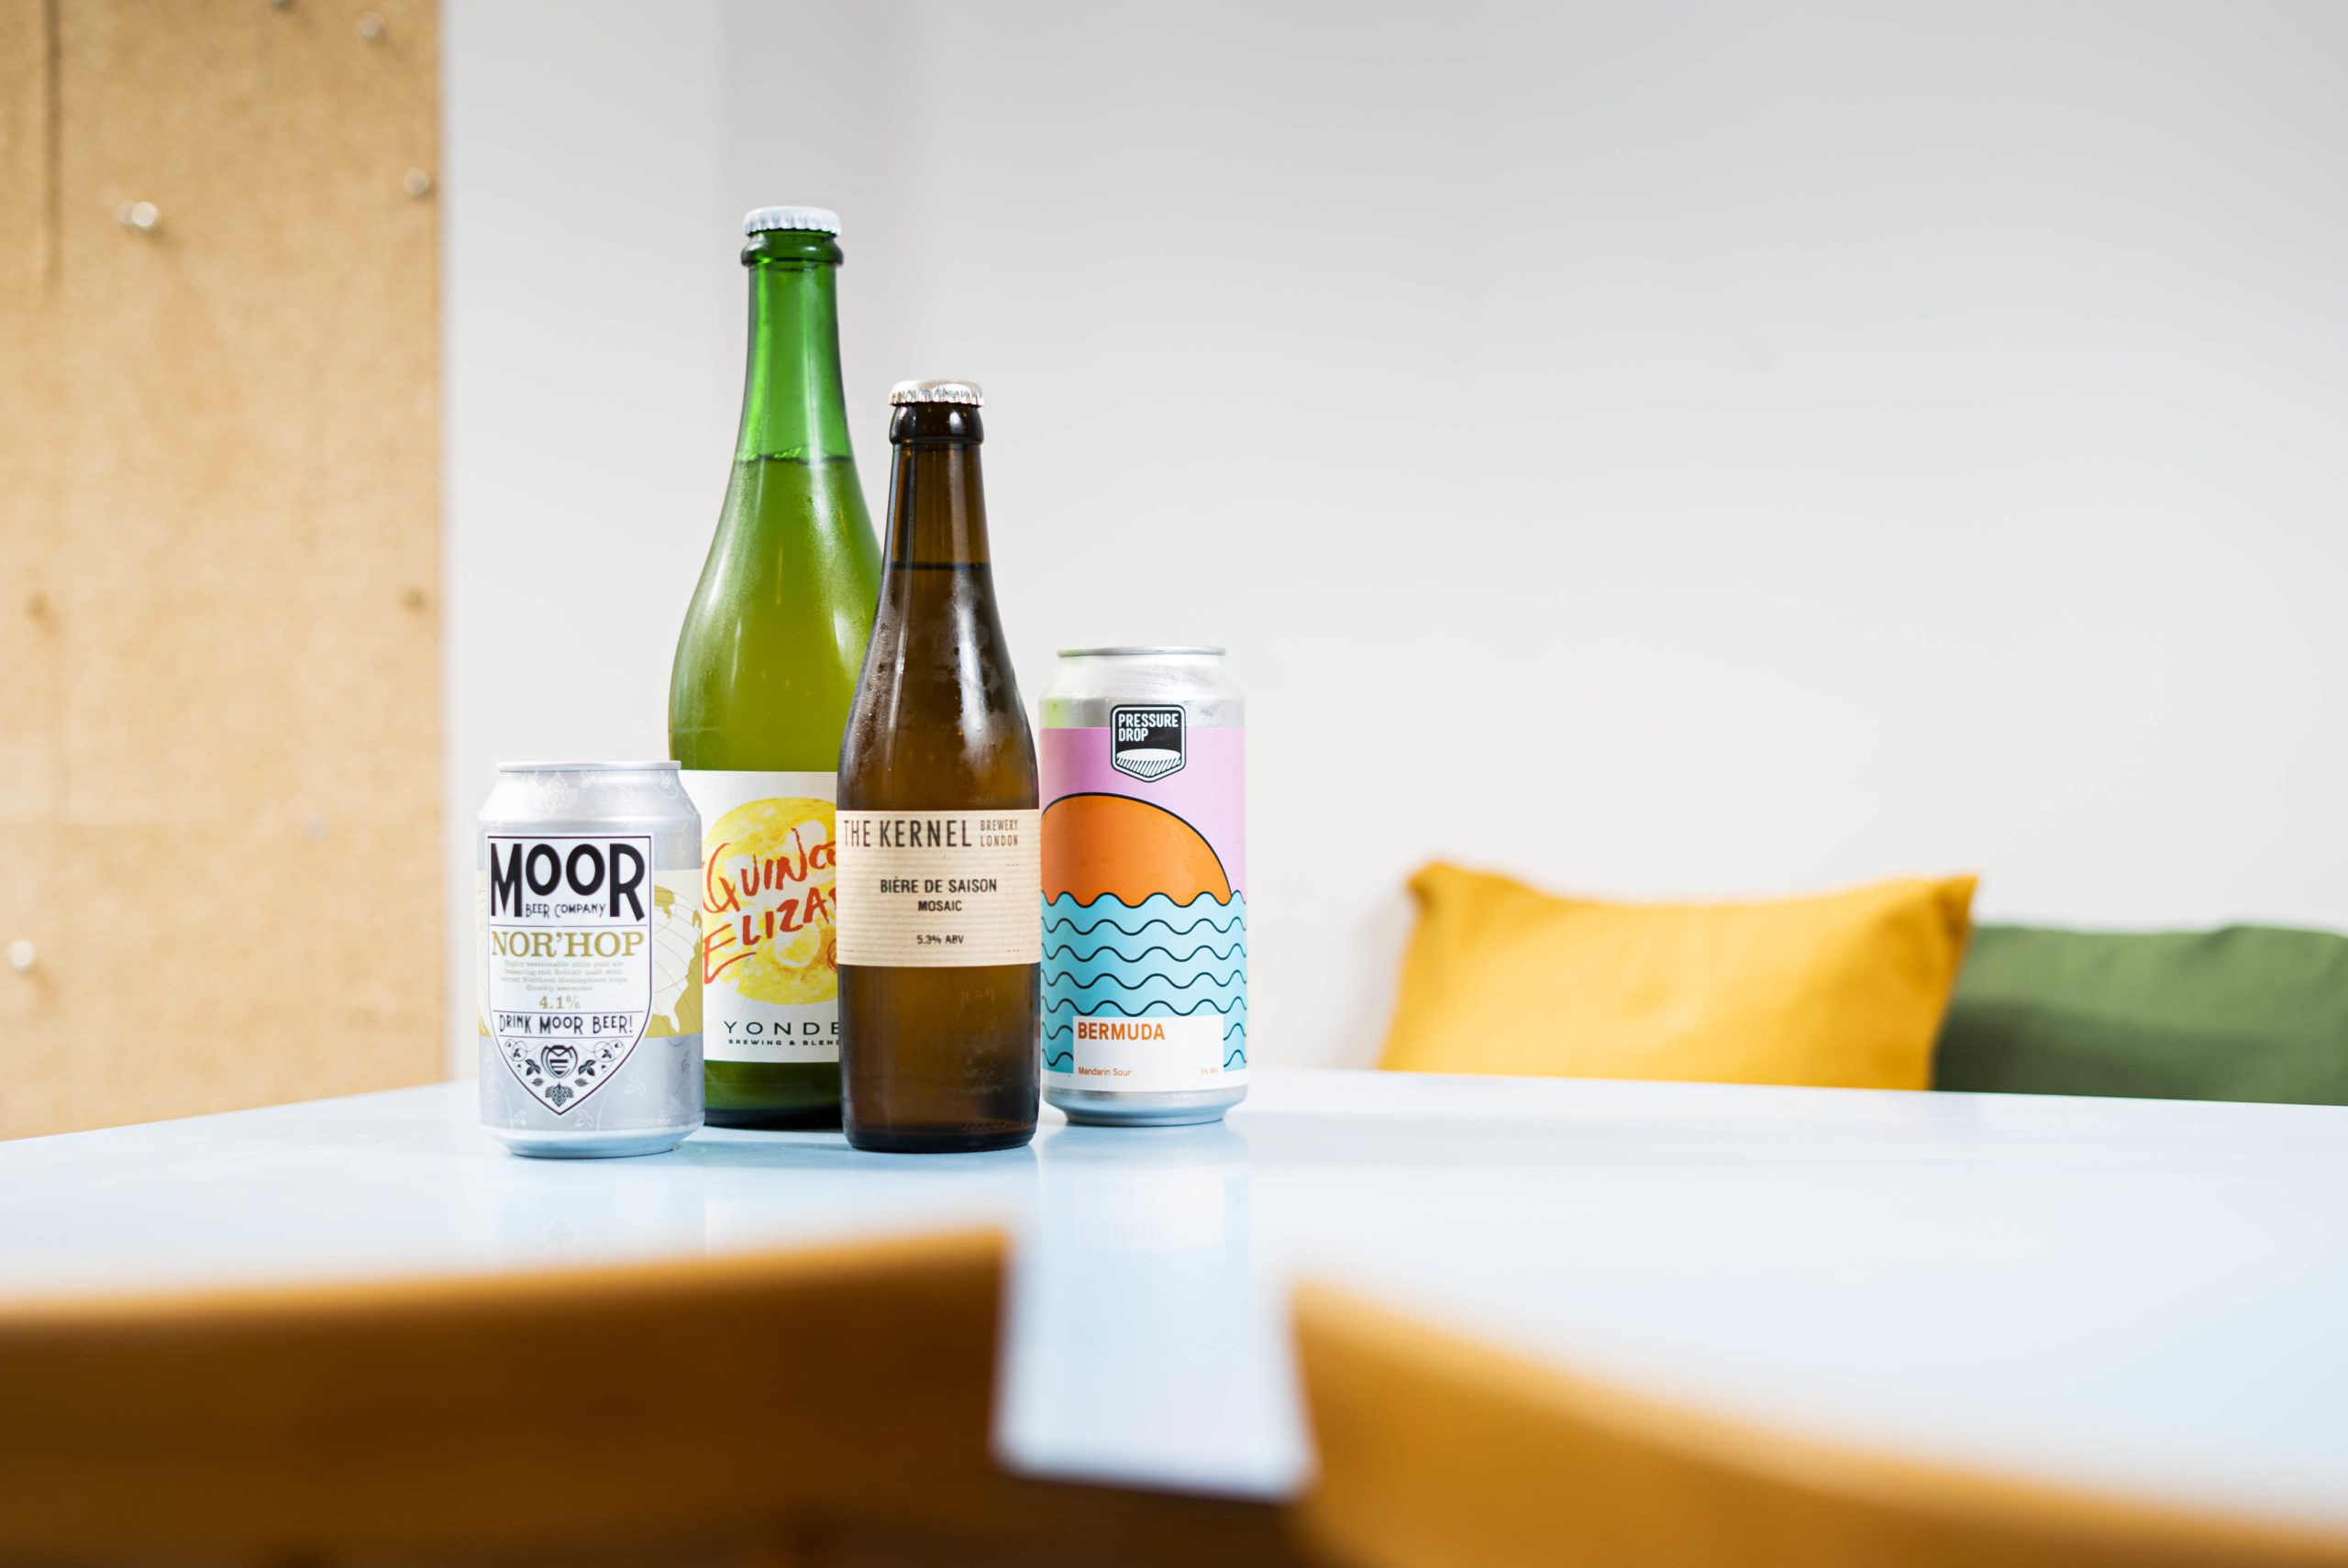 The Beer Shop Collection